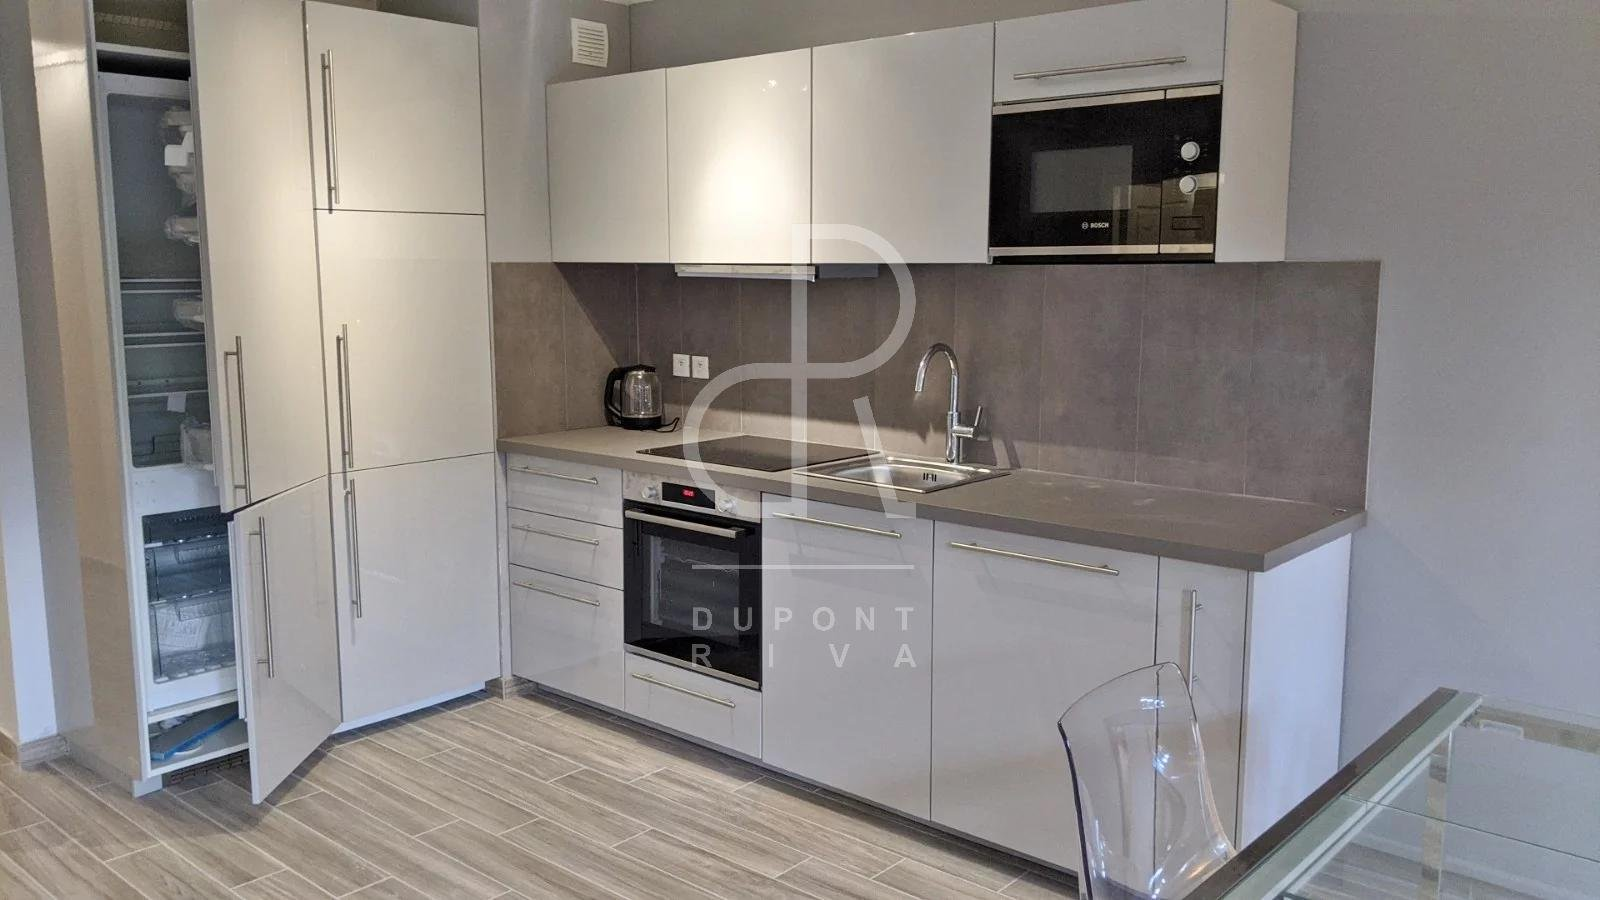 TWO-ROOM APARTMENT IN THE CENTRE BEAUSOLEIL WITH GARDEN